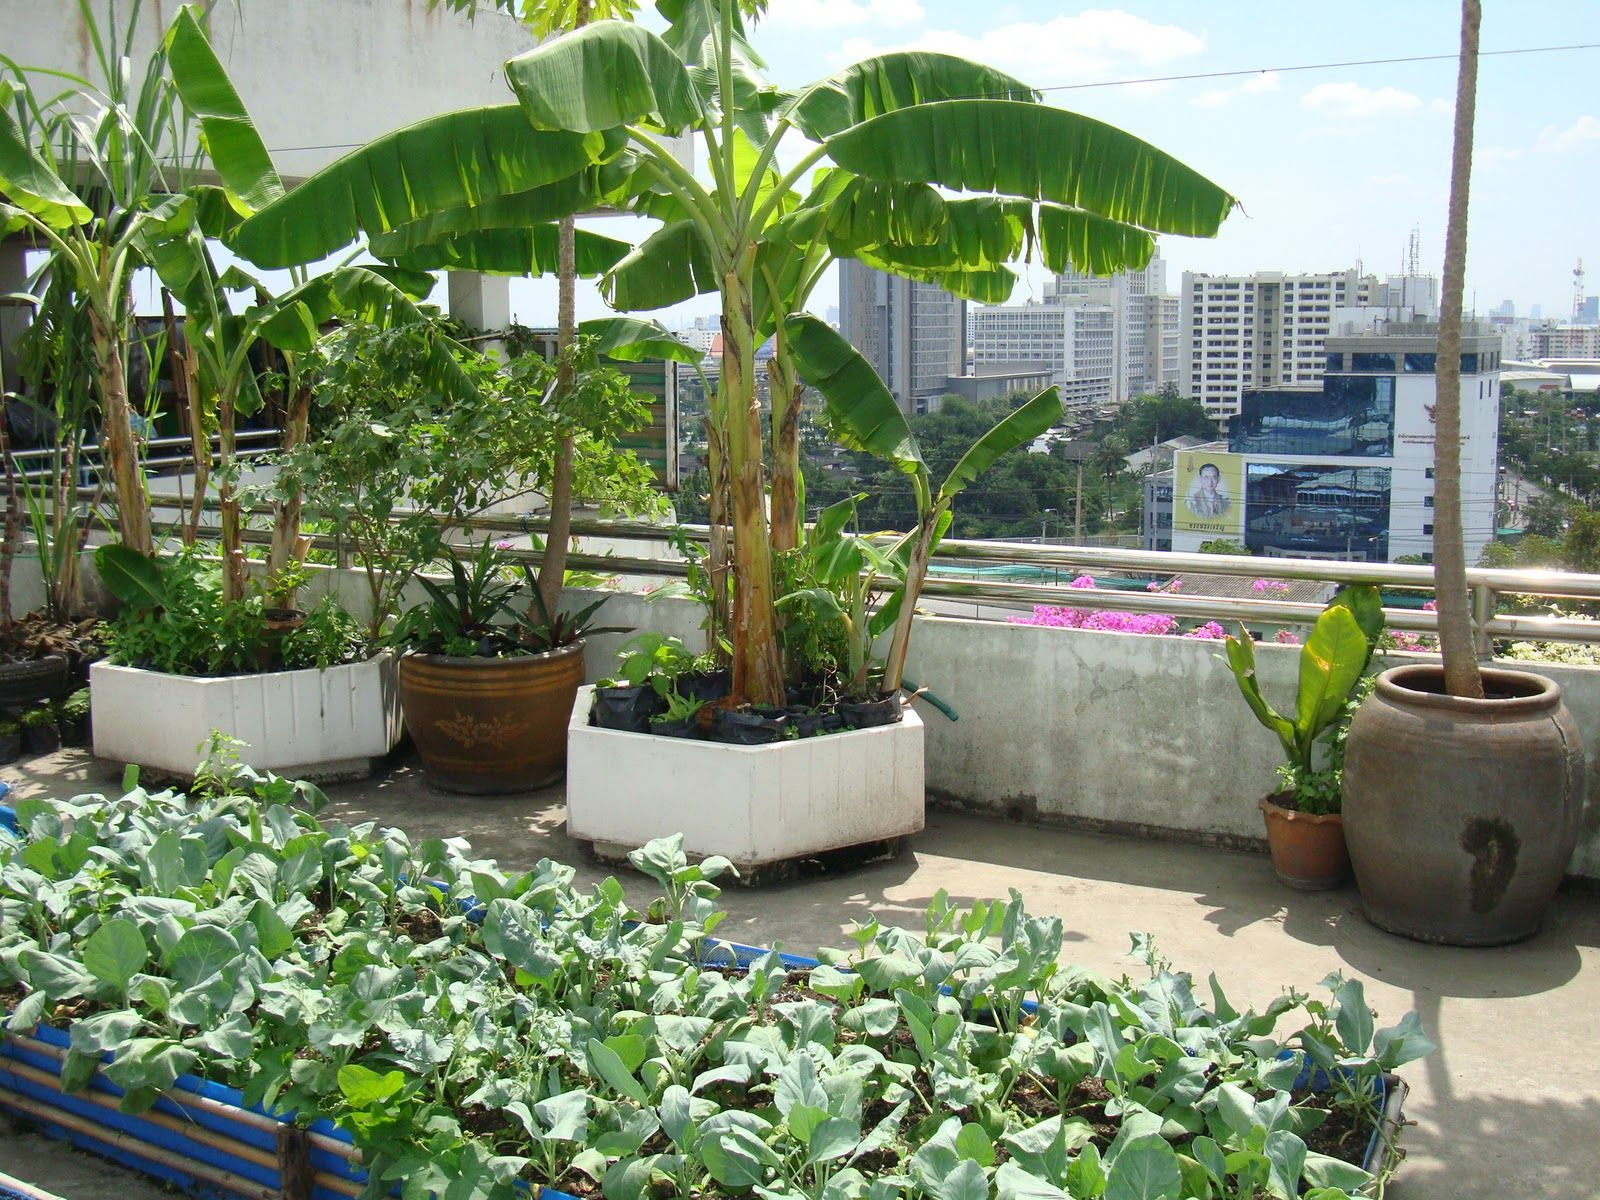 Rooftop garden creative landscape garden serenity for House and garden kitchen photos